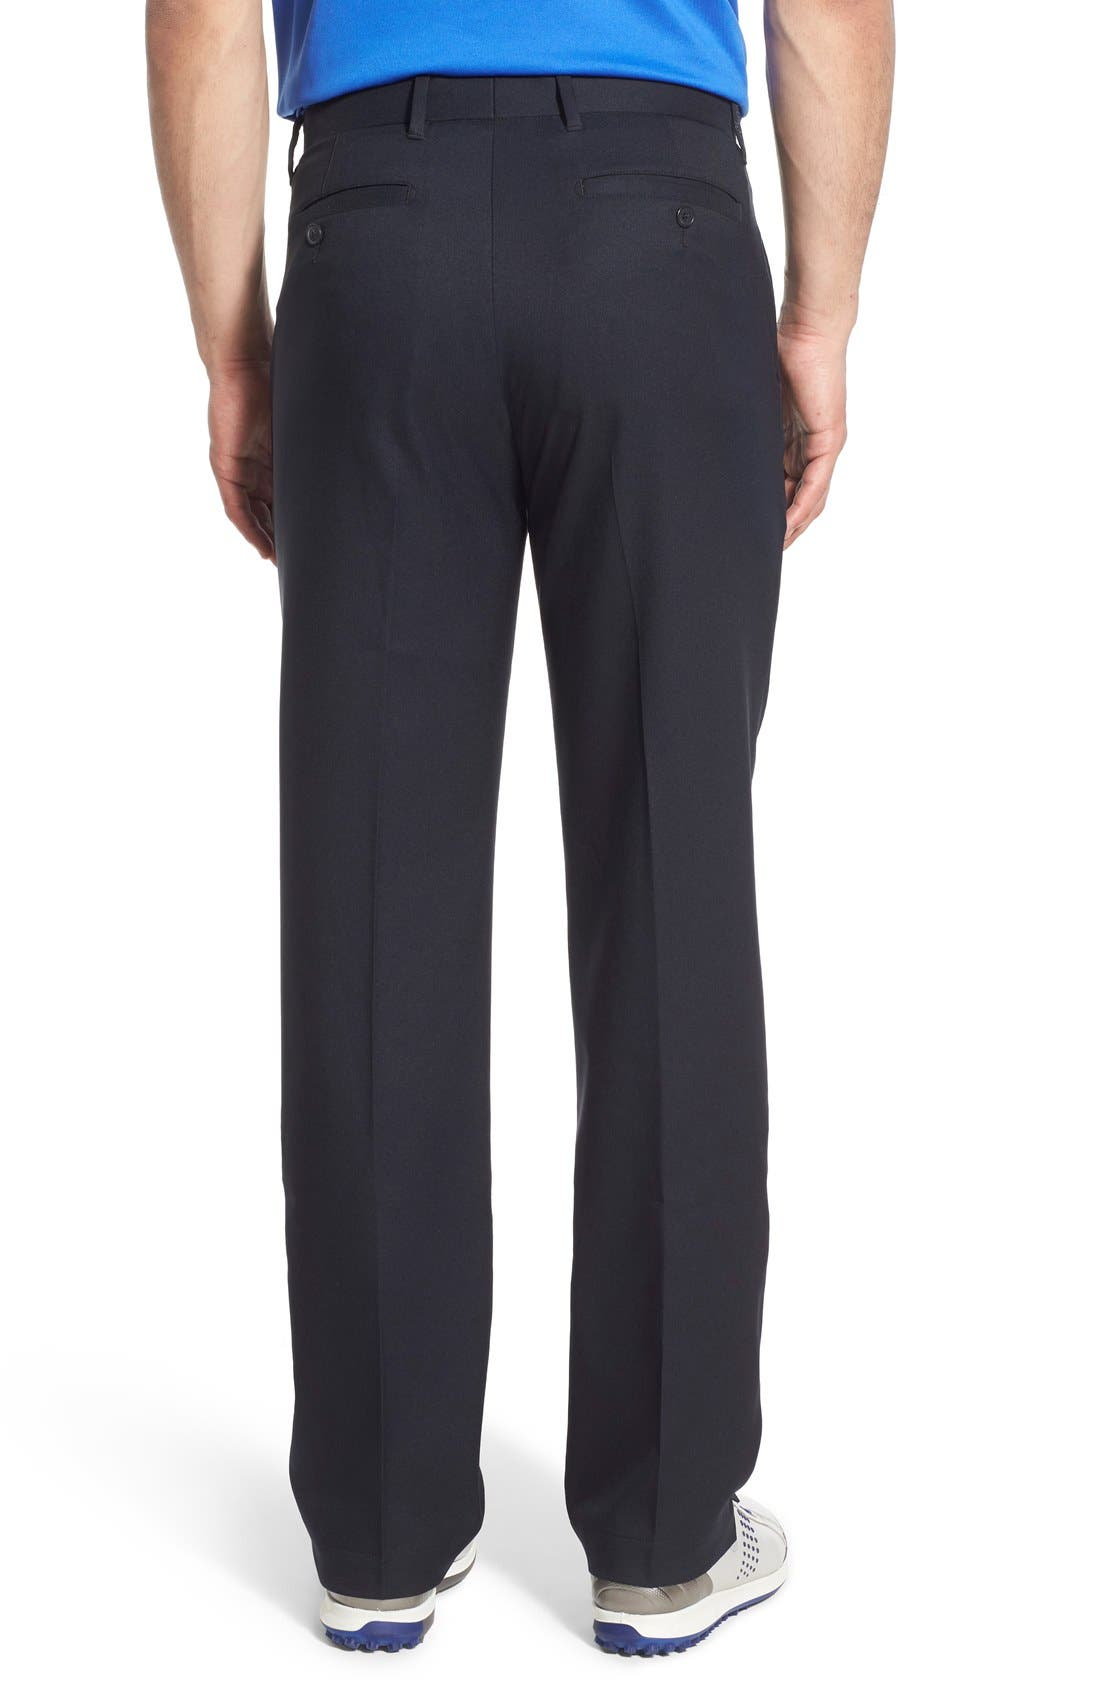 'Tech' Flat Front Wrinkle Free Golf Pants,                             Alternate thumbnail 3, color,                             Black